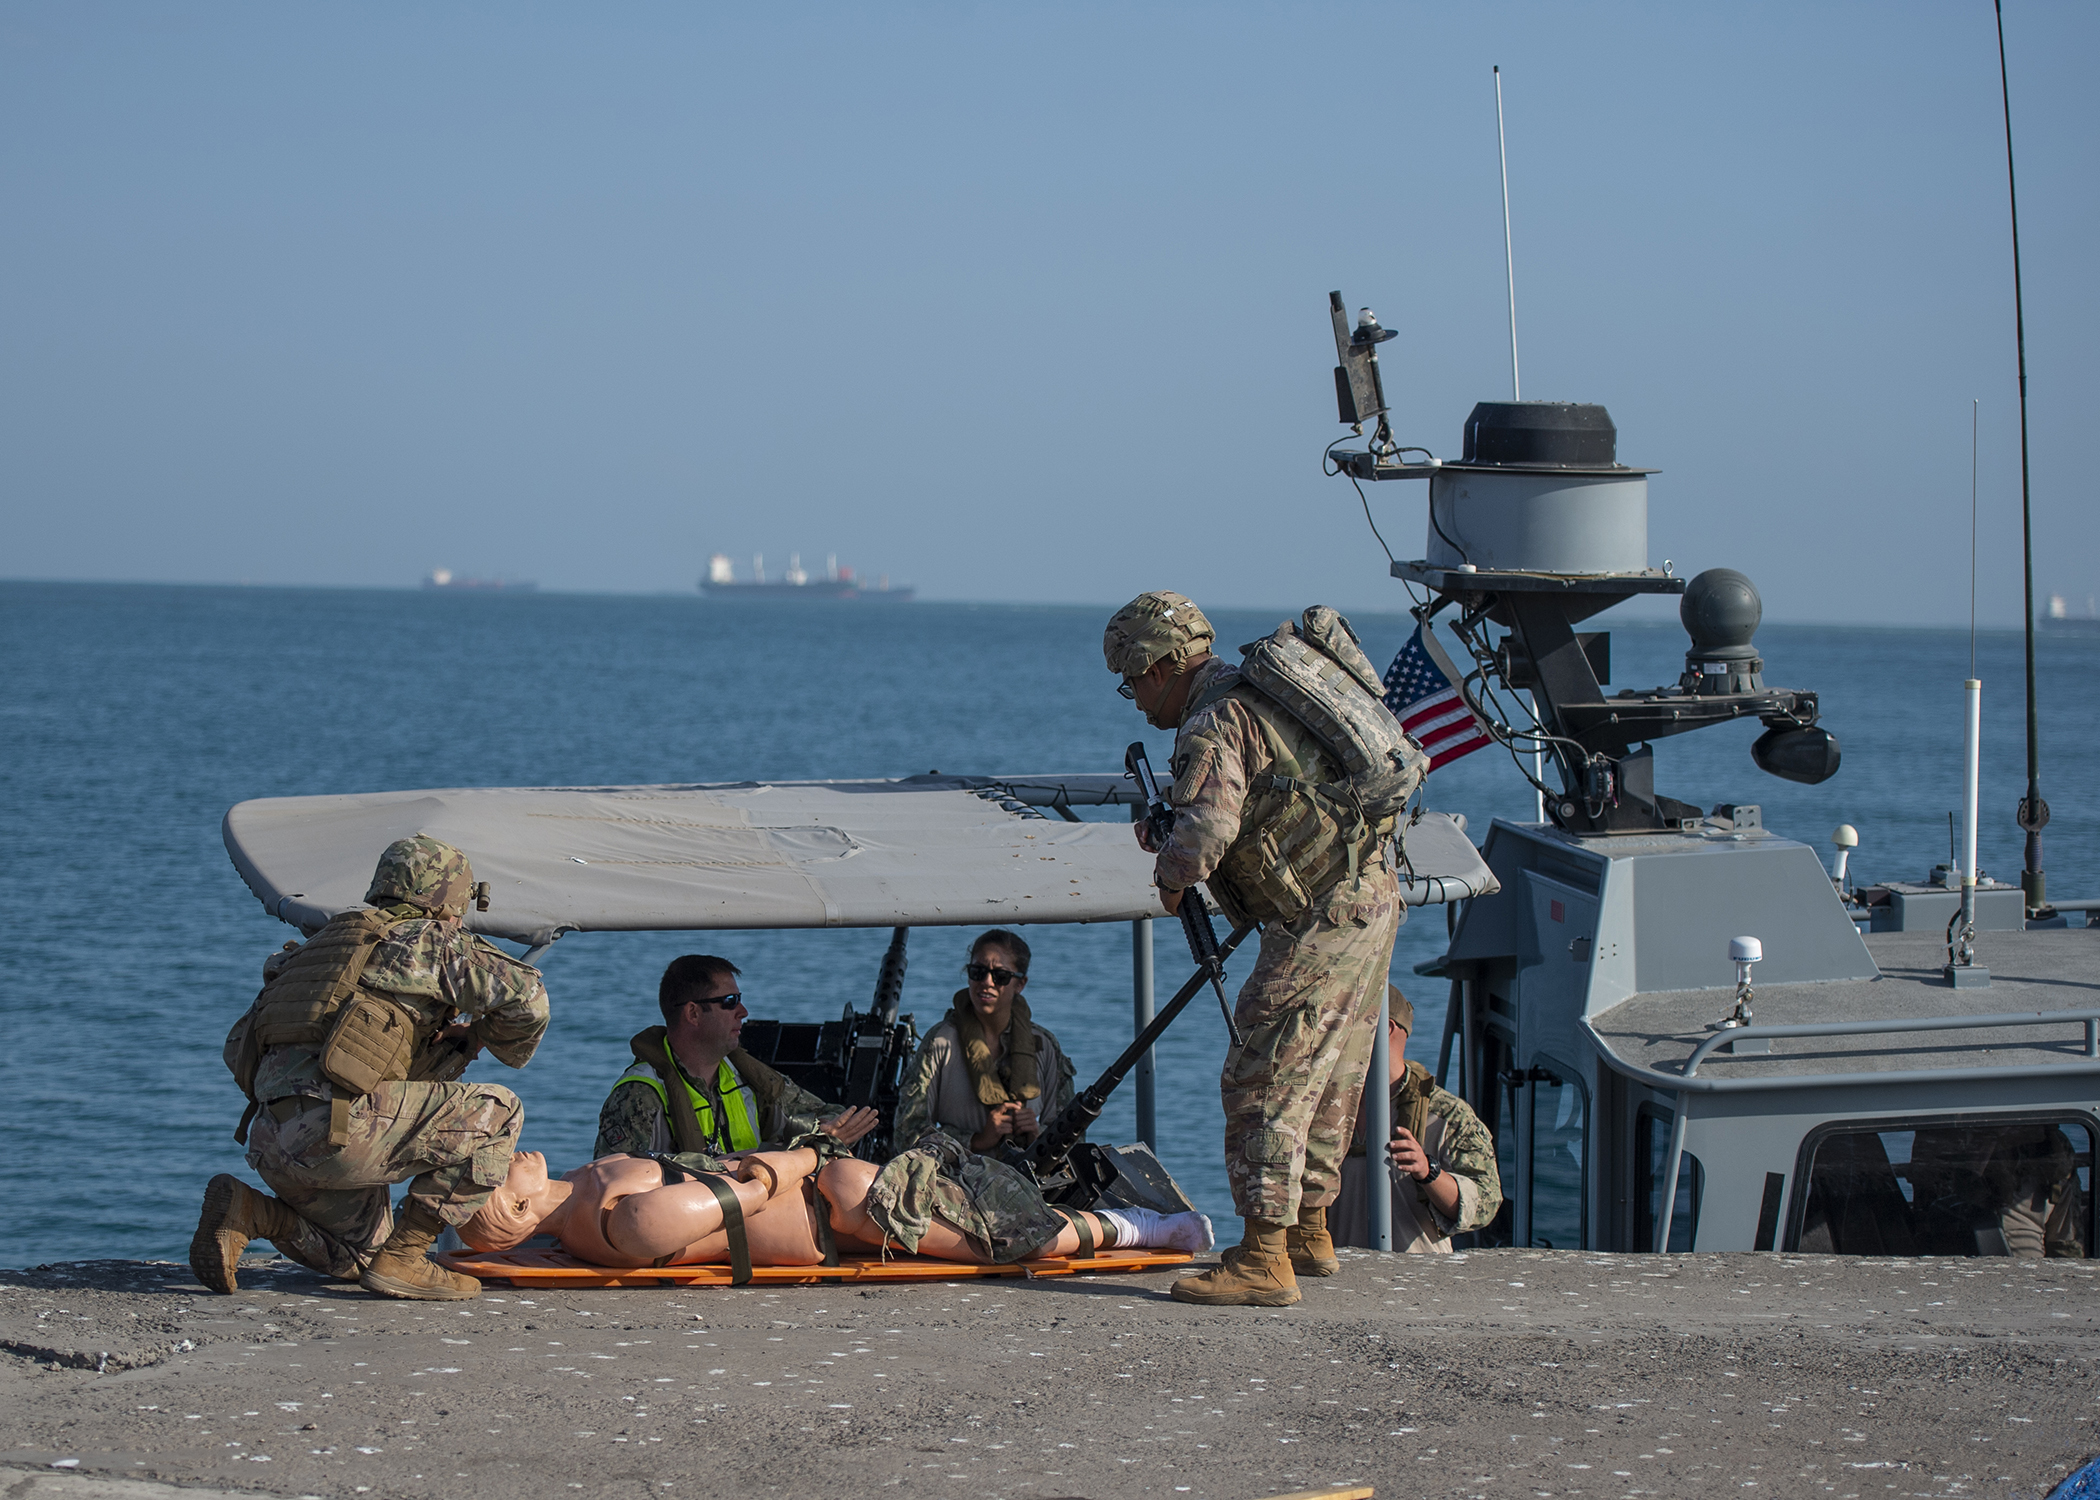 U.S. Army Soldiers from 1st Battalion, 141st Infantry Regiment, Task Force Alamo, Texas National Guard, deployed to Combined Joint Task Force-Horn of Africa (CJTF-HOA), Djibouti, receive a simulated casualty from U.S. Navy Sailors assigned to Coastal Riverine Squadron 8, CJTF-HOA, during the first-ever U.S. military exercise at the Port of Djibouti, Dec. 19, 2018. The casualty evacuation exercise tested response time in case of a combat injury and included U.S. Navy, Army and Djibouti Port Authority assets. (U.S. Air Force photo by Tech. Sgt. Shawn Nickel)